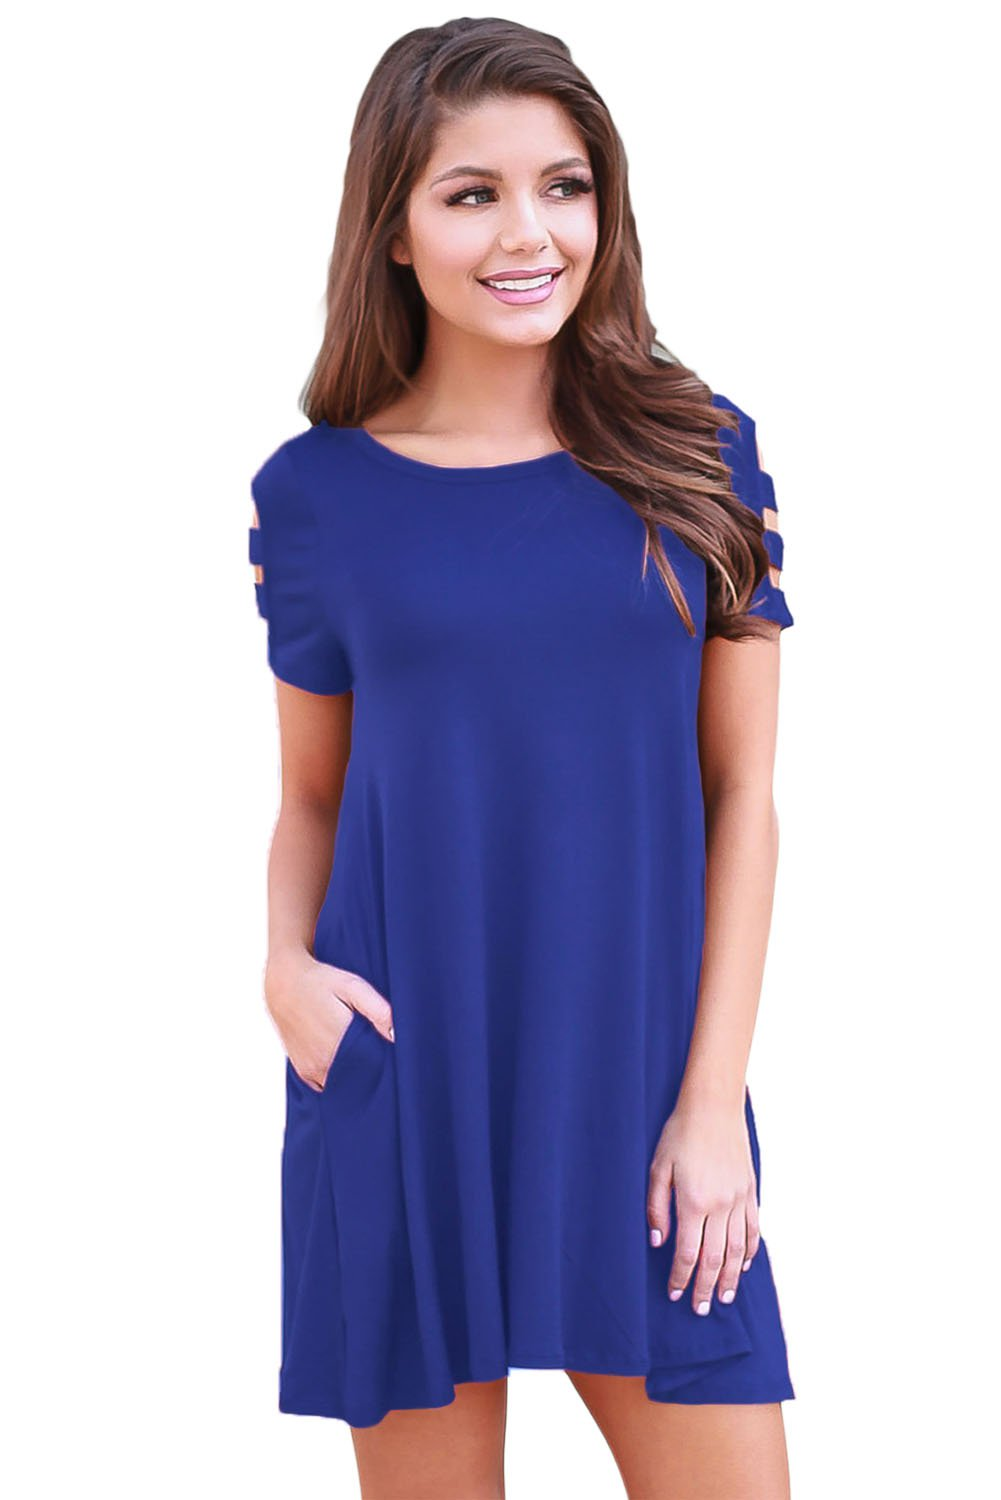 Blue Banded Short Sleeve Relaxing Casual Dress